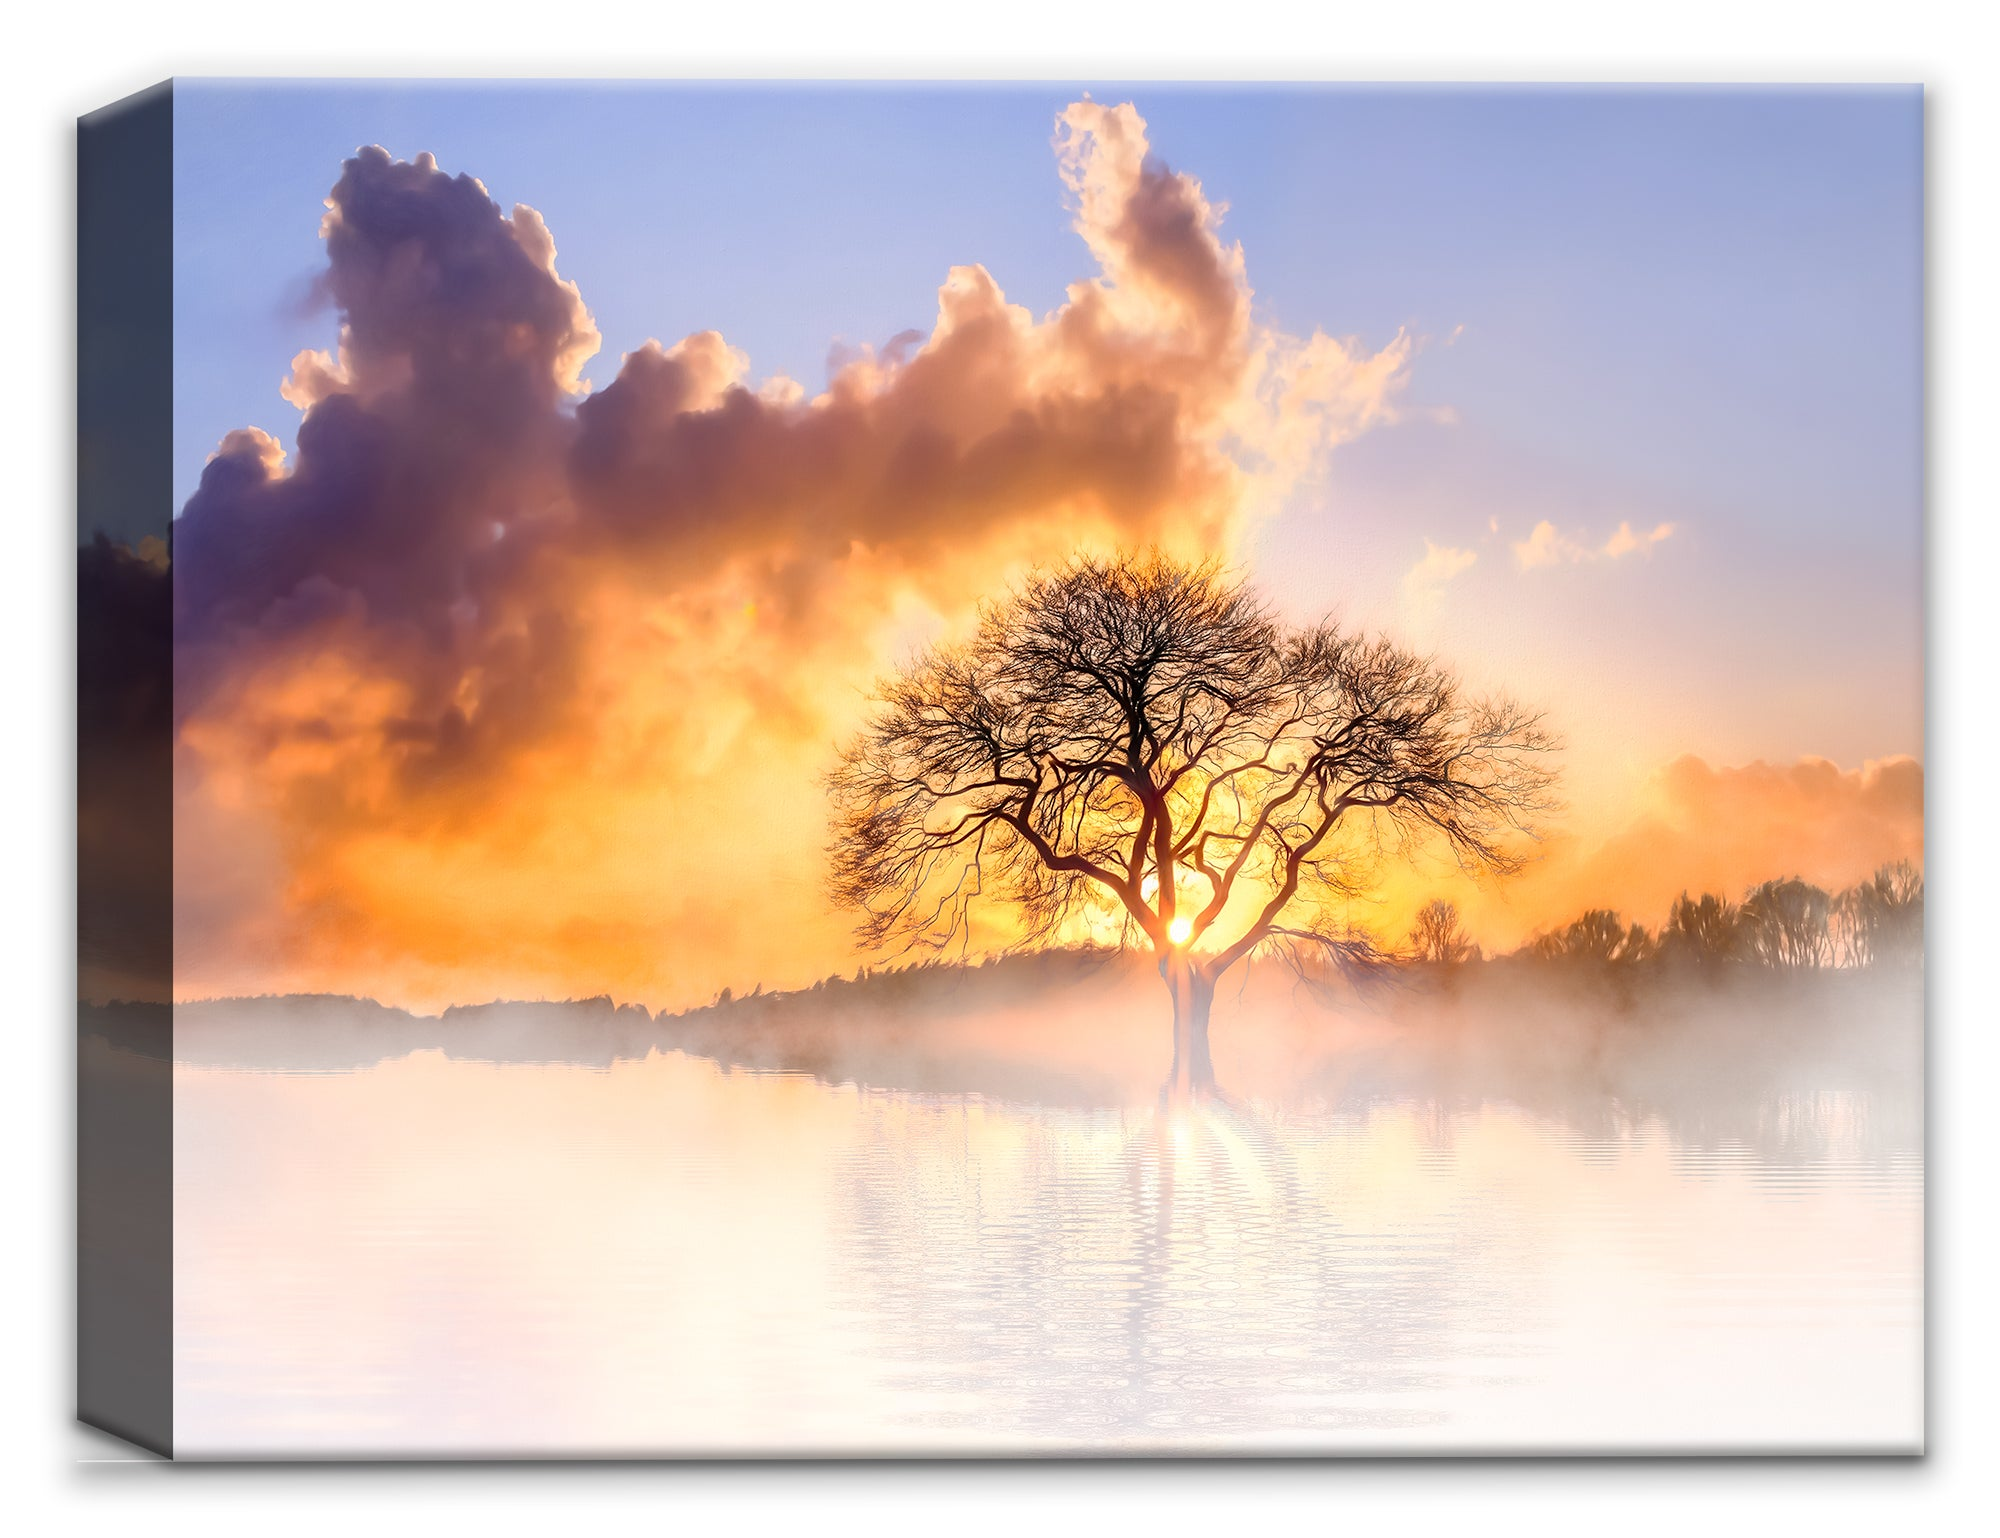 Fog Water & Tree - Canvas Wall Art